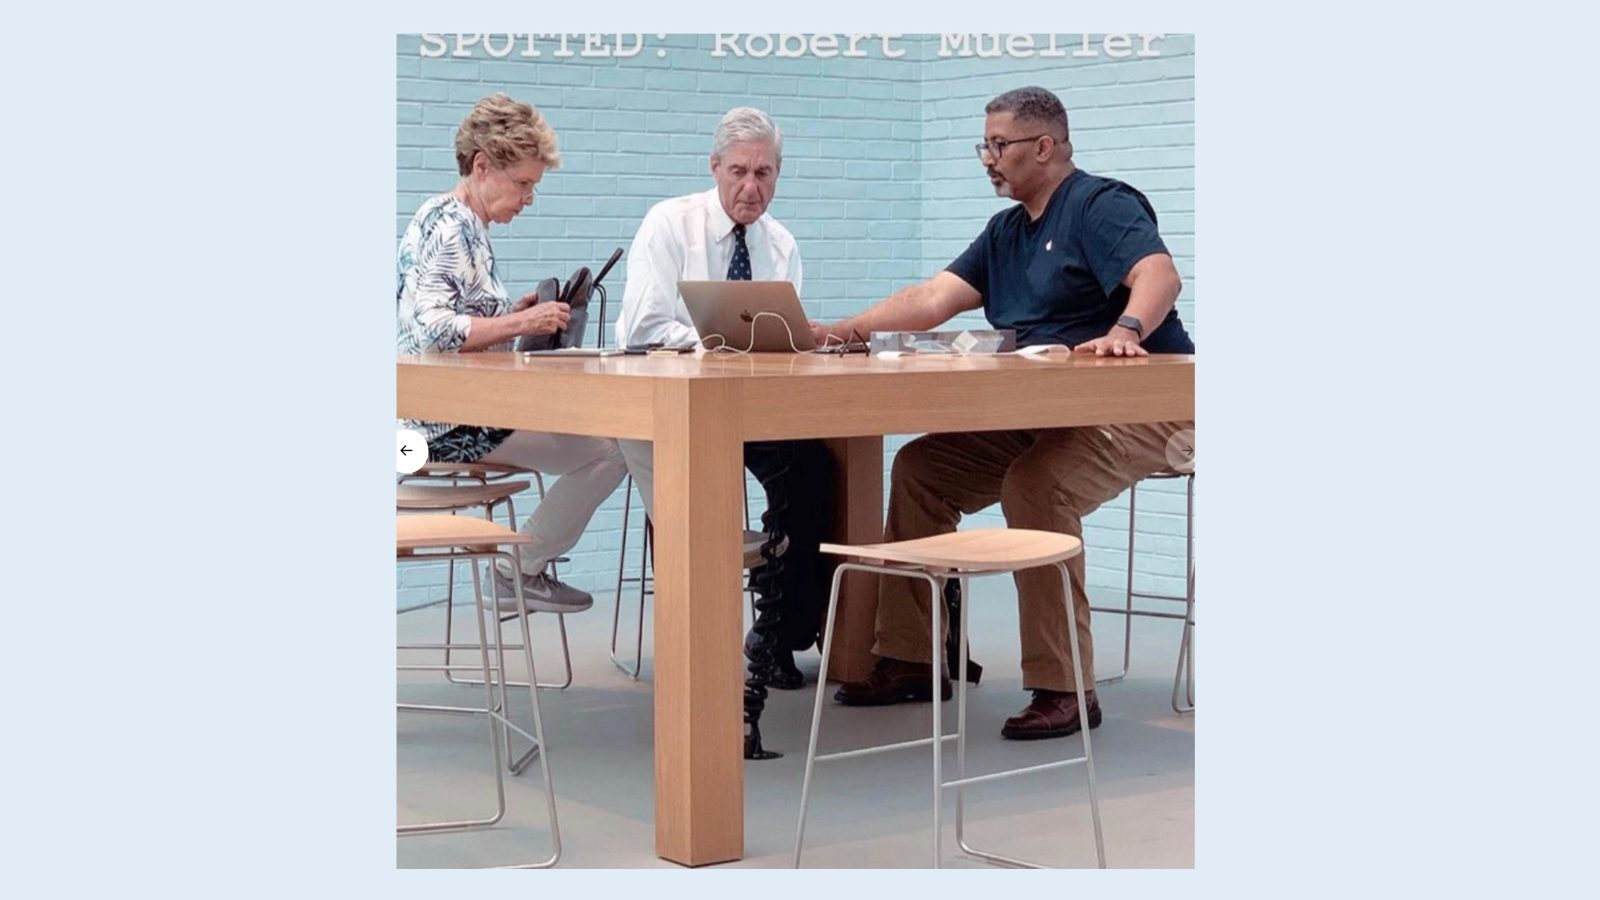 caption contest what s robert mueller getting help with at a